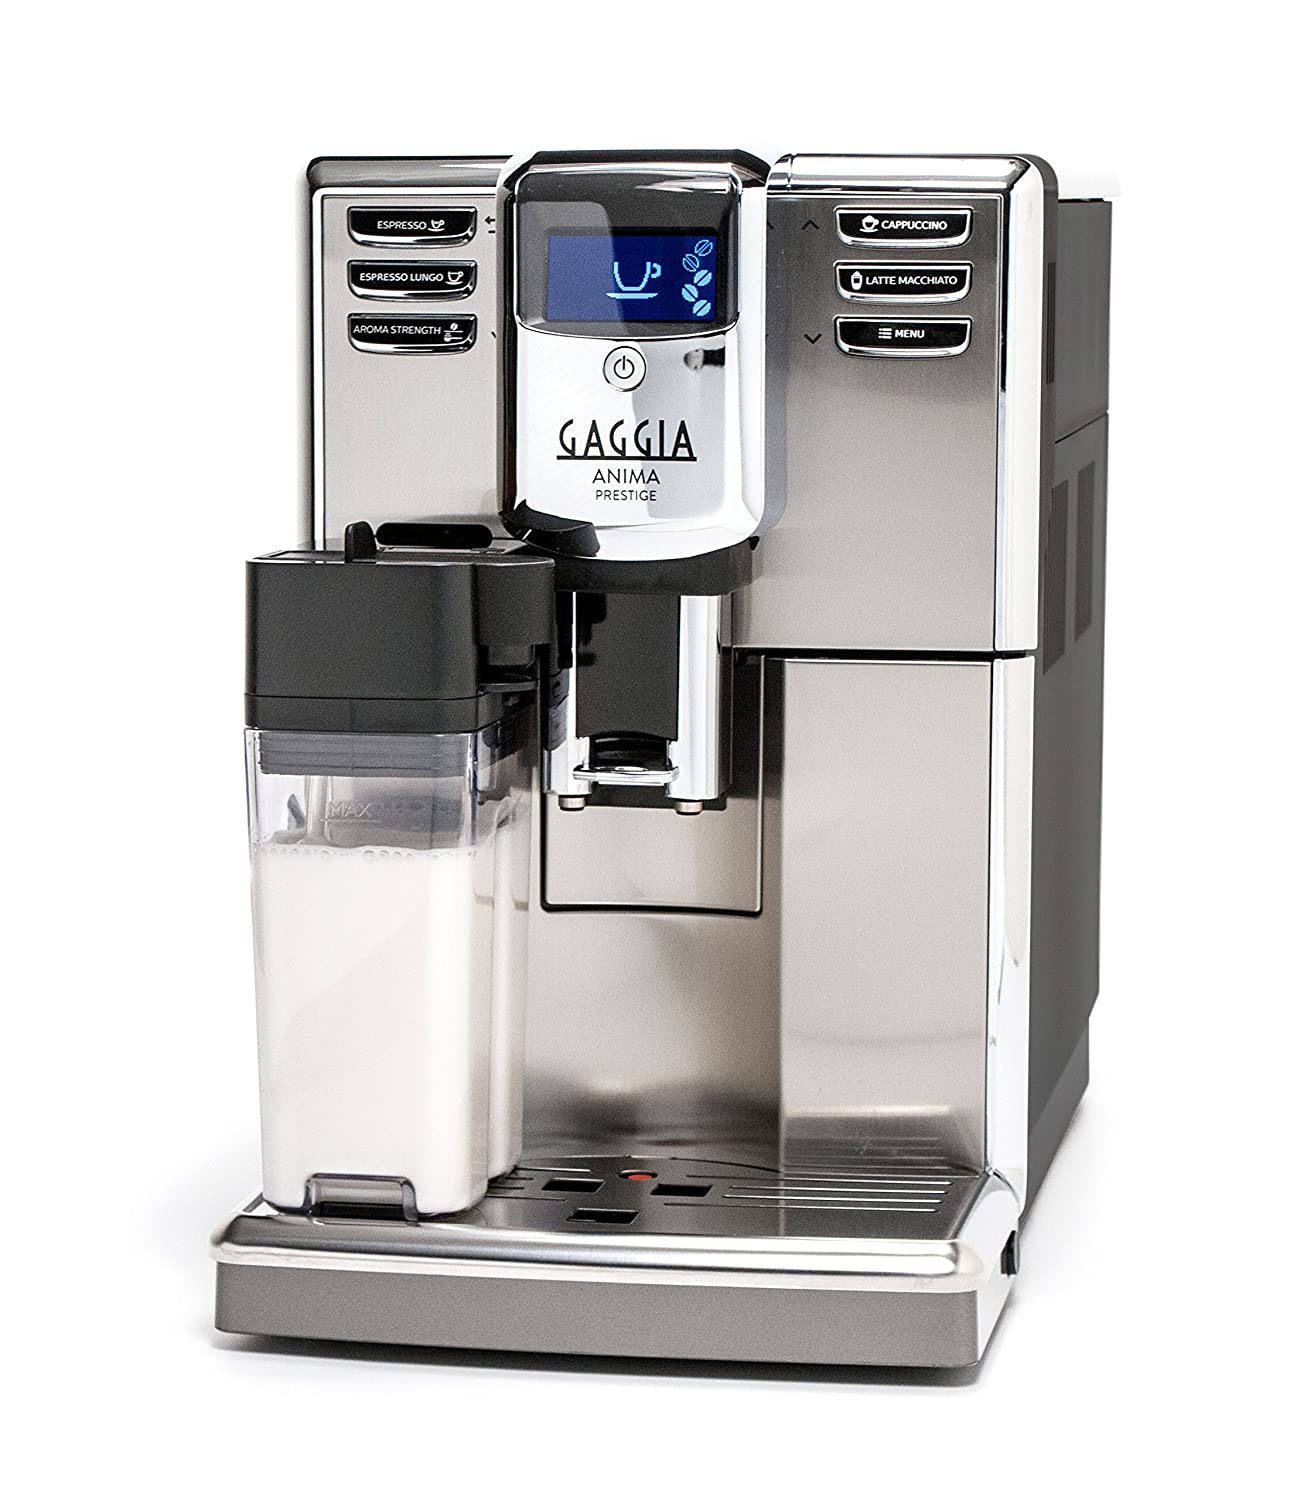 Amazon.com: Gaggia Anima Prestige Automatic Coffee Machine, Super Automatic  Frothing for Latte, Macchiato, Cappuccino and Espresso Drinks with  Programmable ...